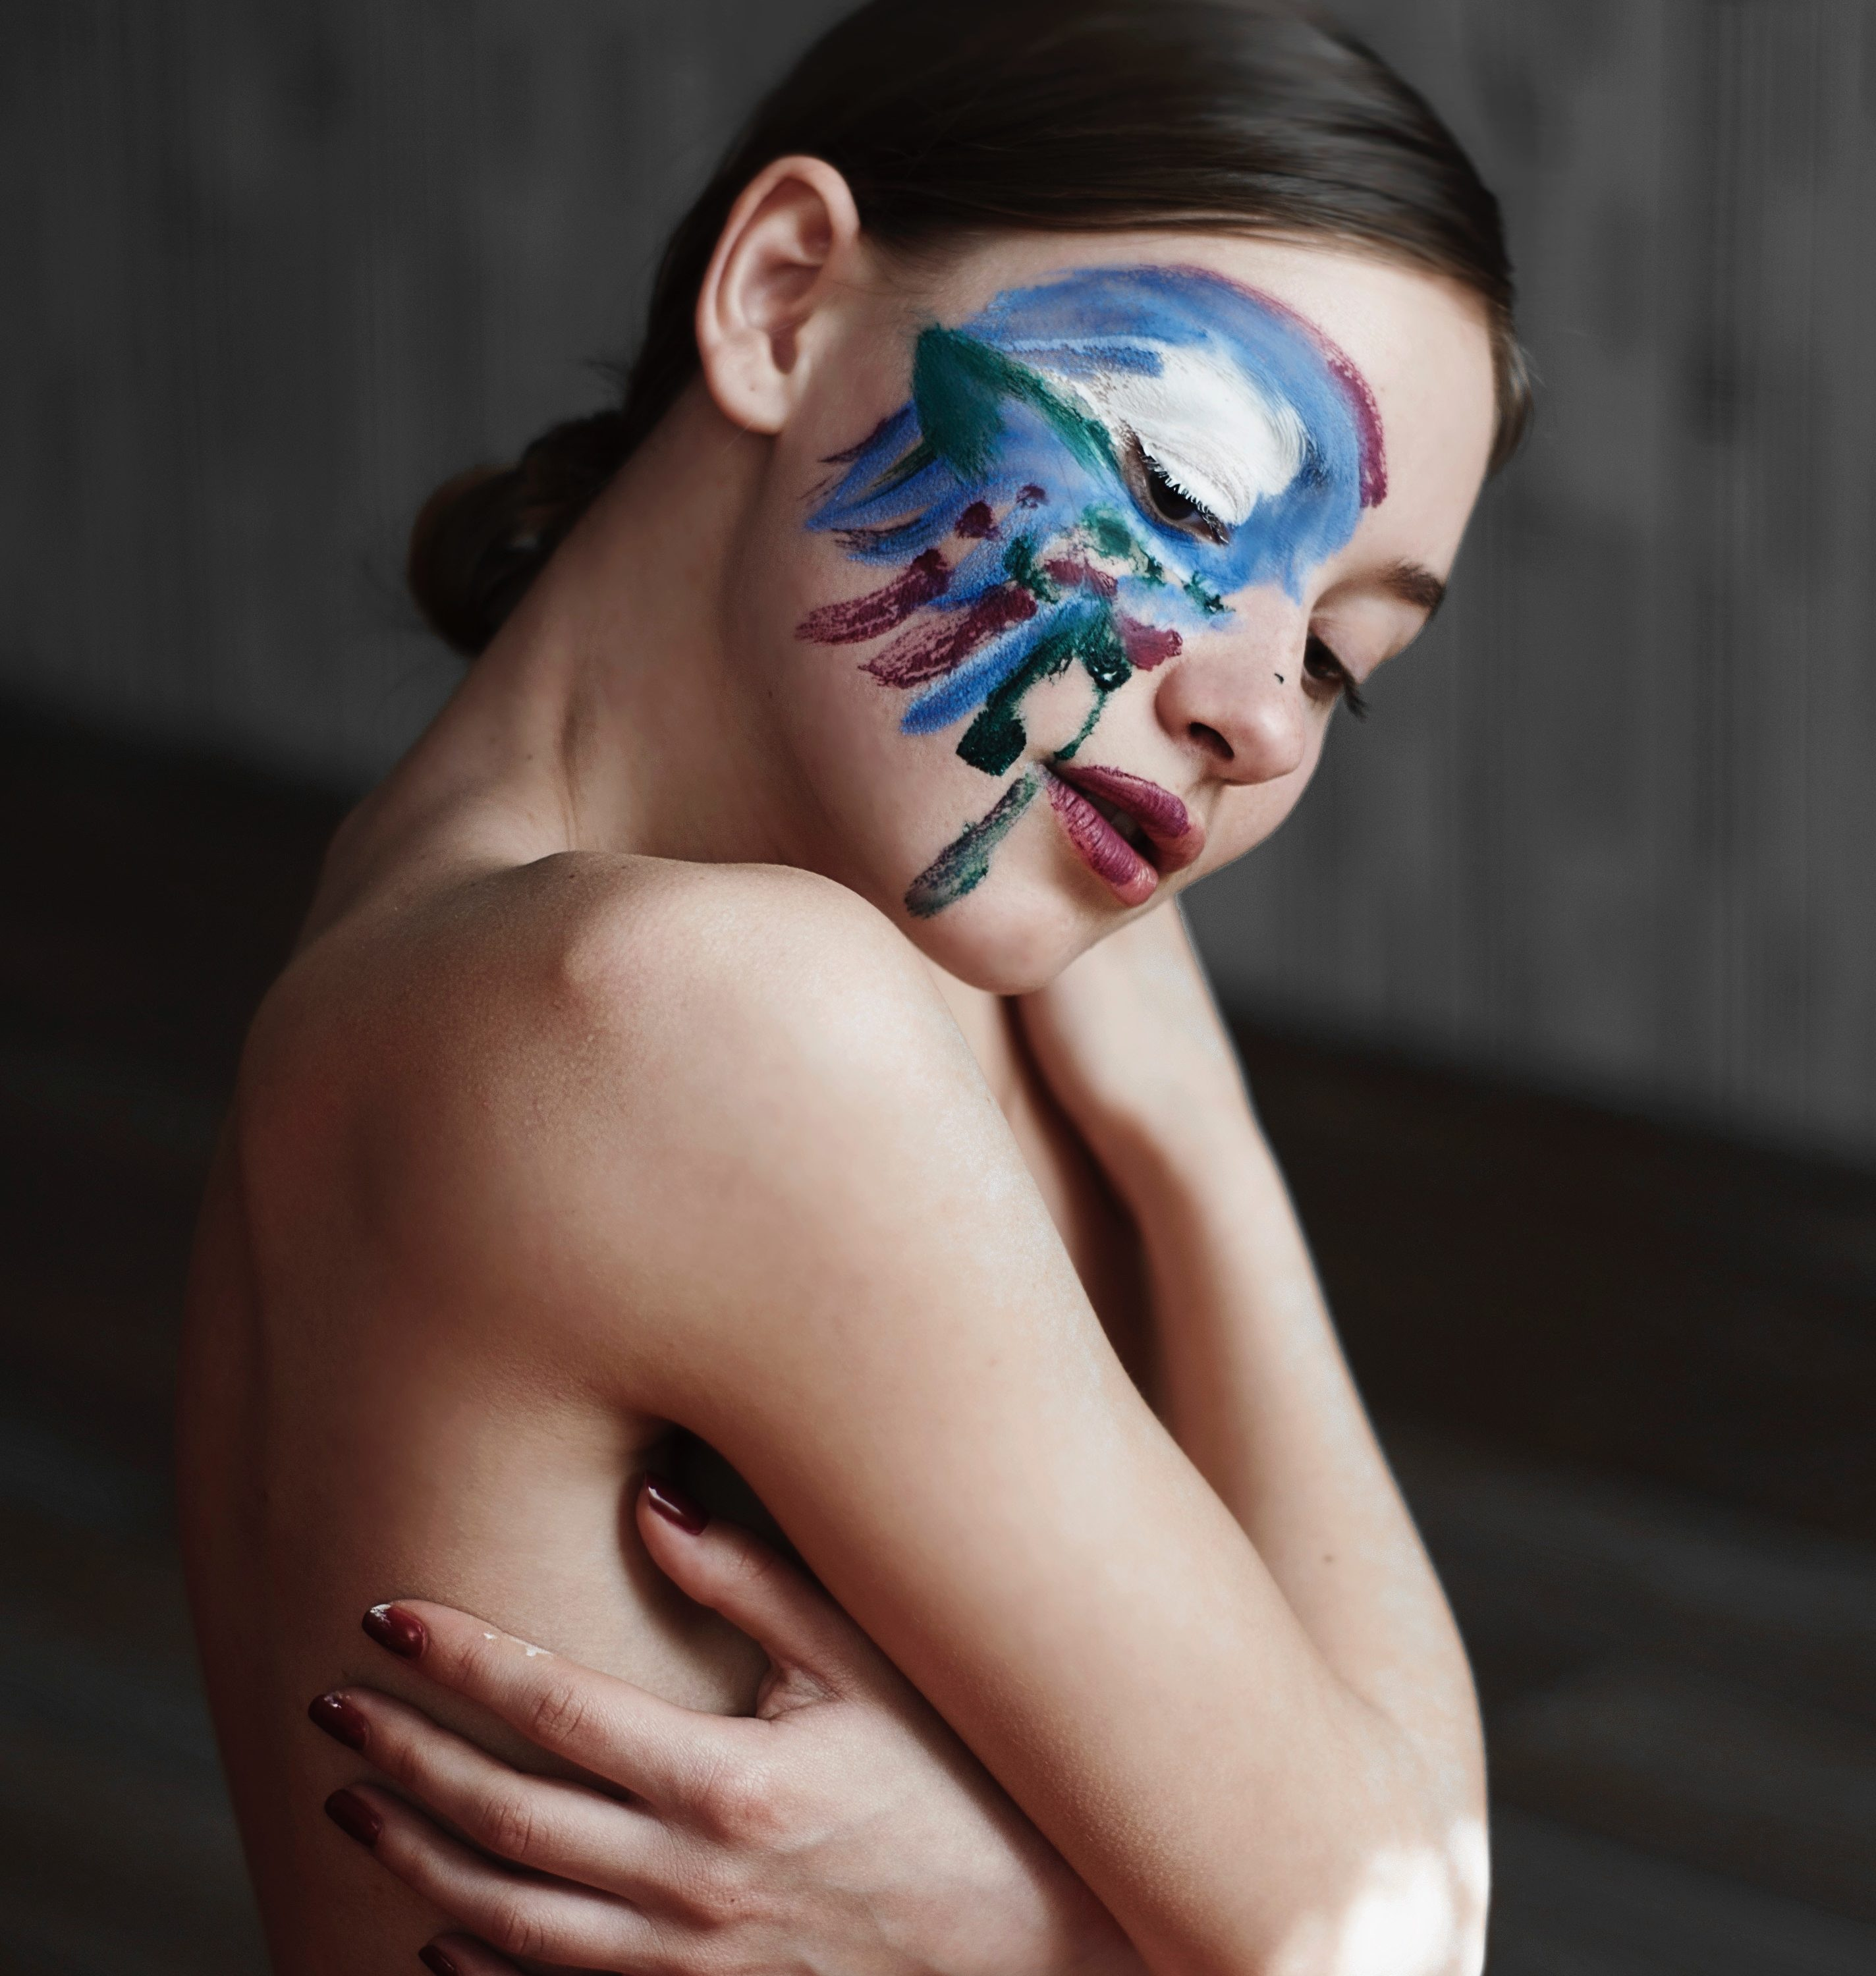 Model with paint on her face to symbolise creative side hustles